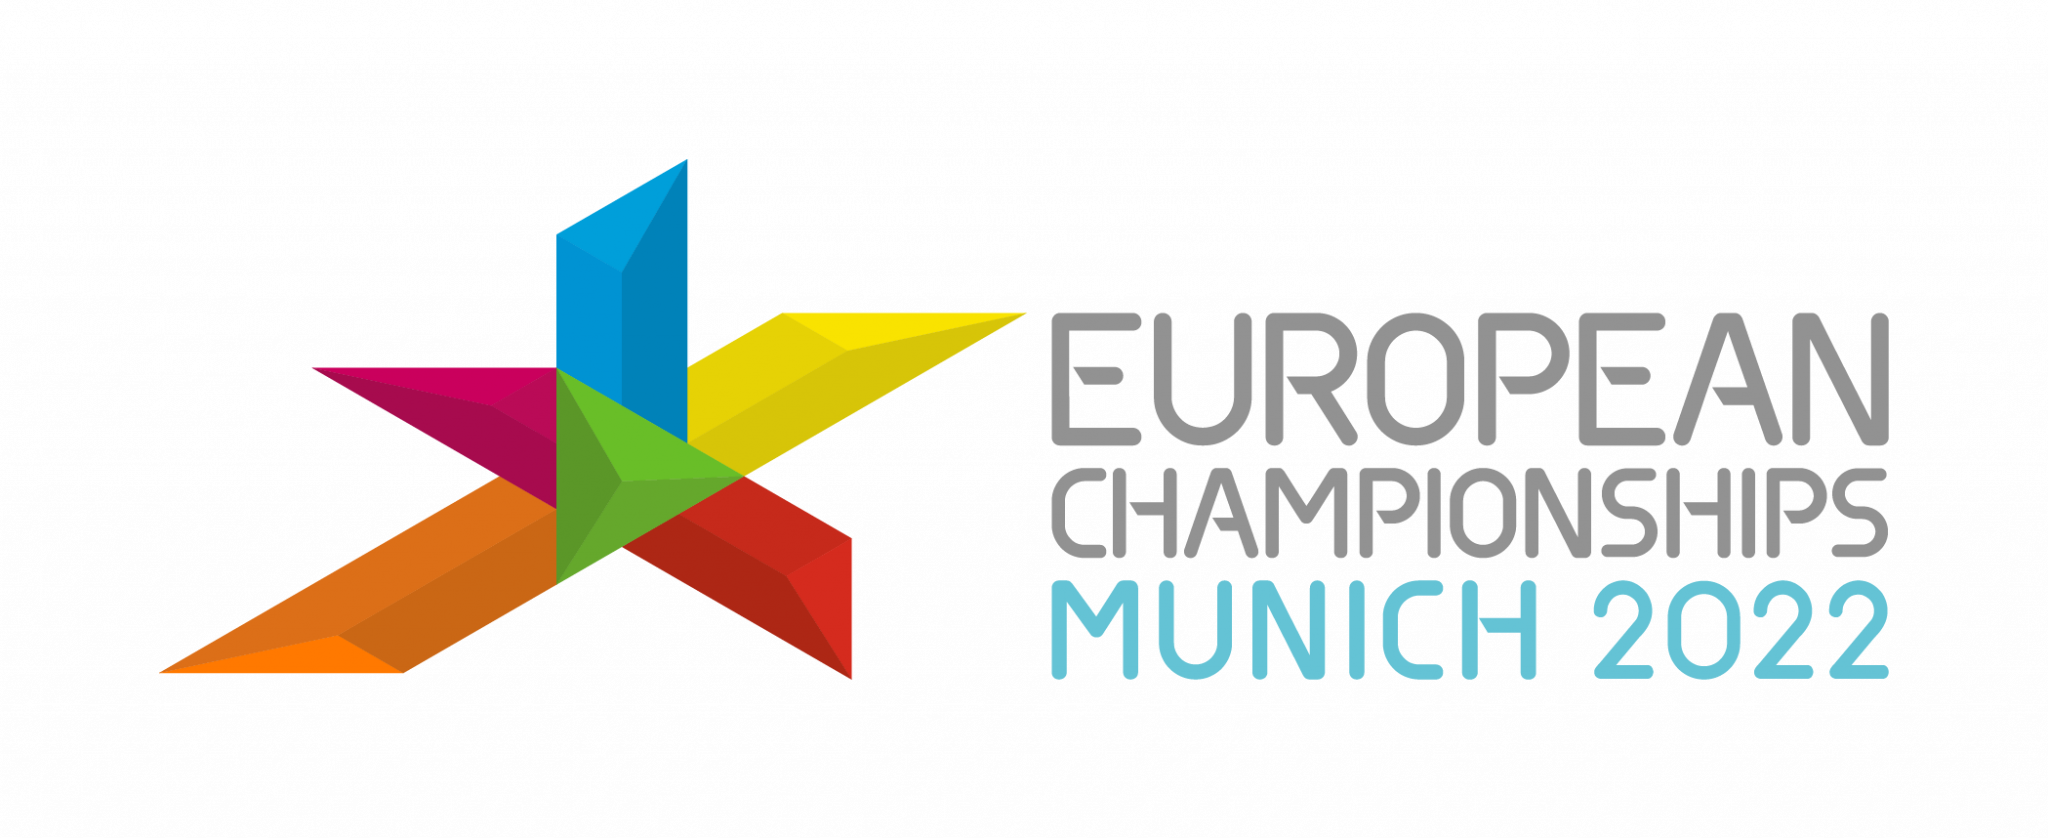 Munich 2022 targets staging climate-neutral European Championships